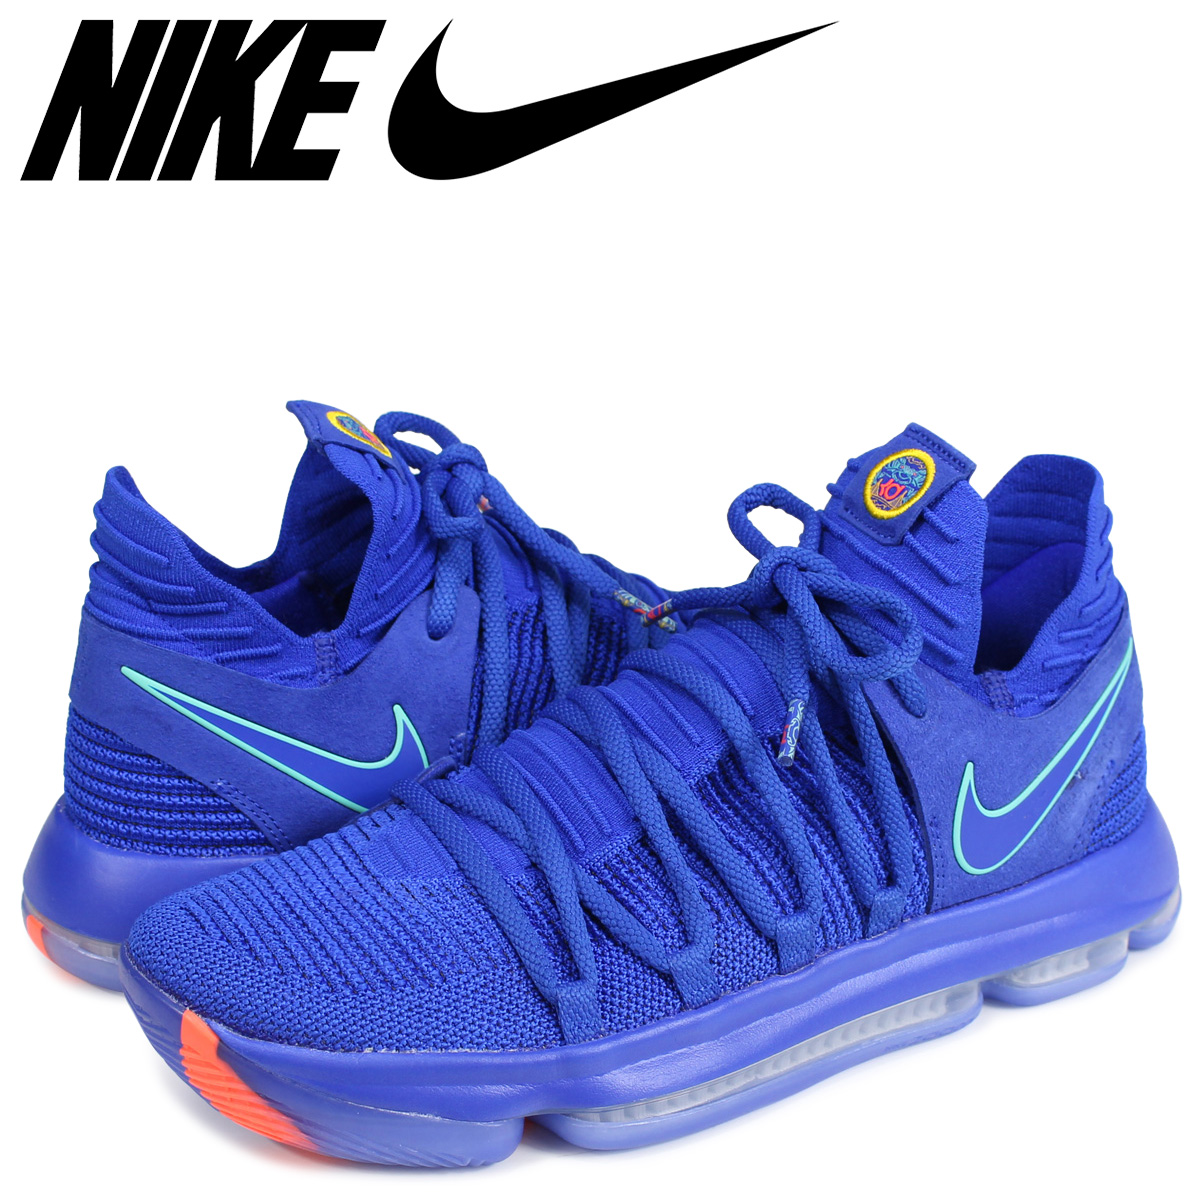 kd 10s blue Kevin Durant shoes on sale